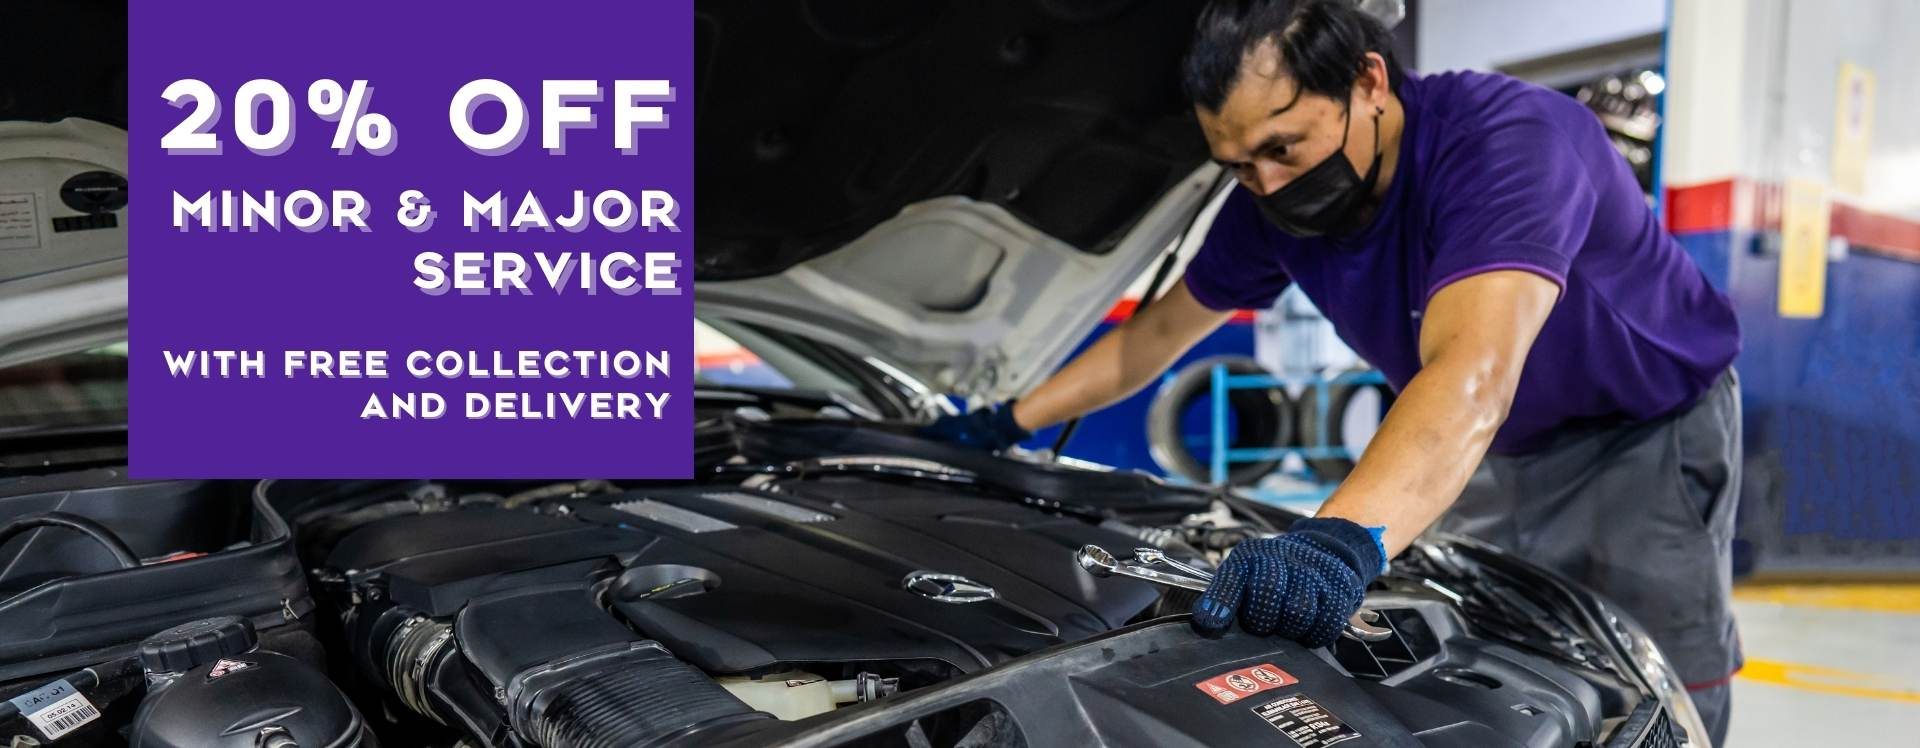 20% off Major and Minor car service